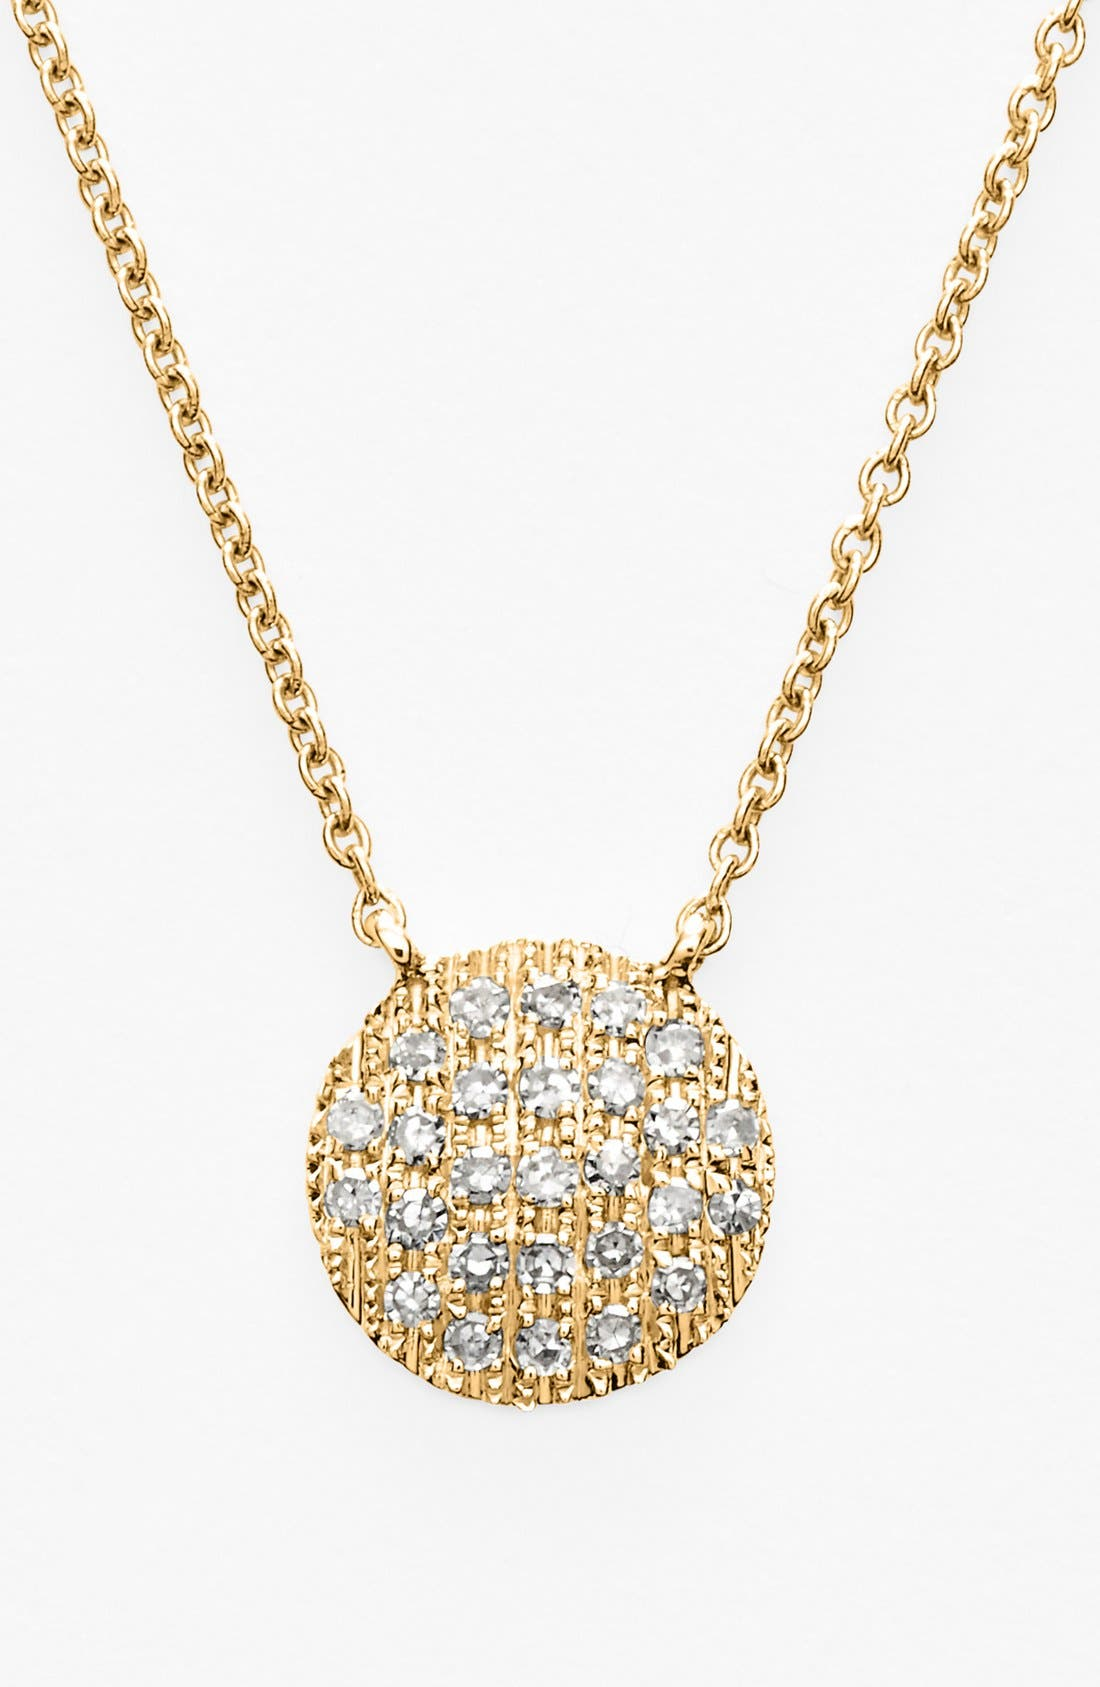 Alternate Image 1 Selected - Dana Rebecca Designs 'Lauren Joy' Diamond Disc Pendant Necklace